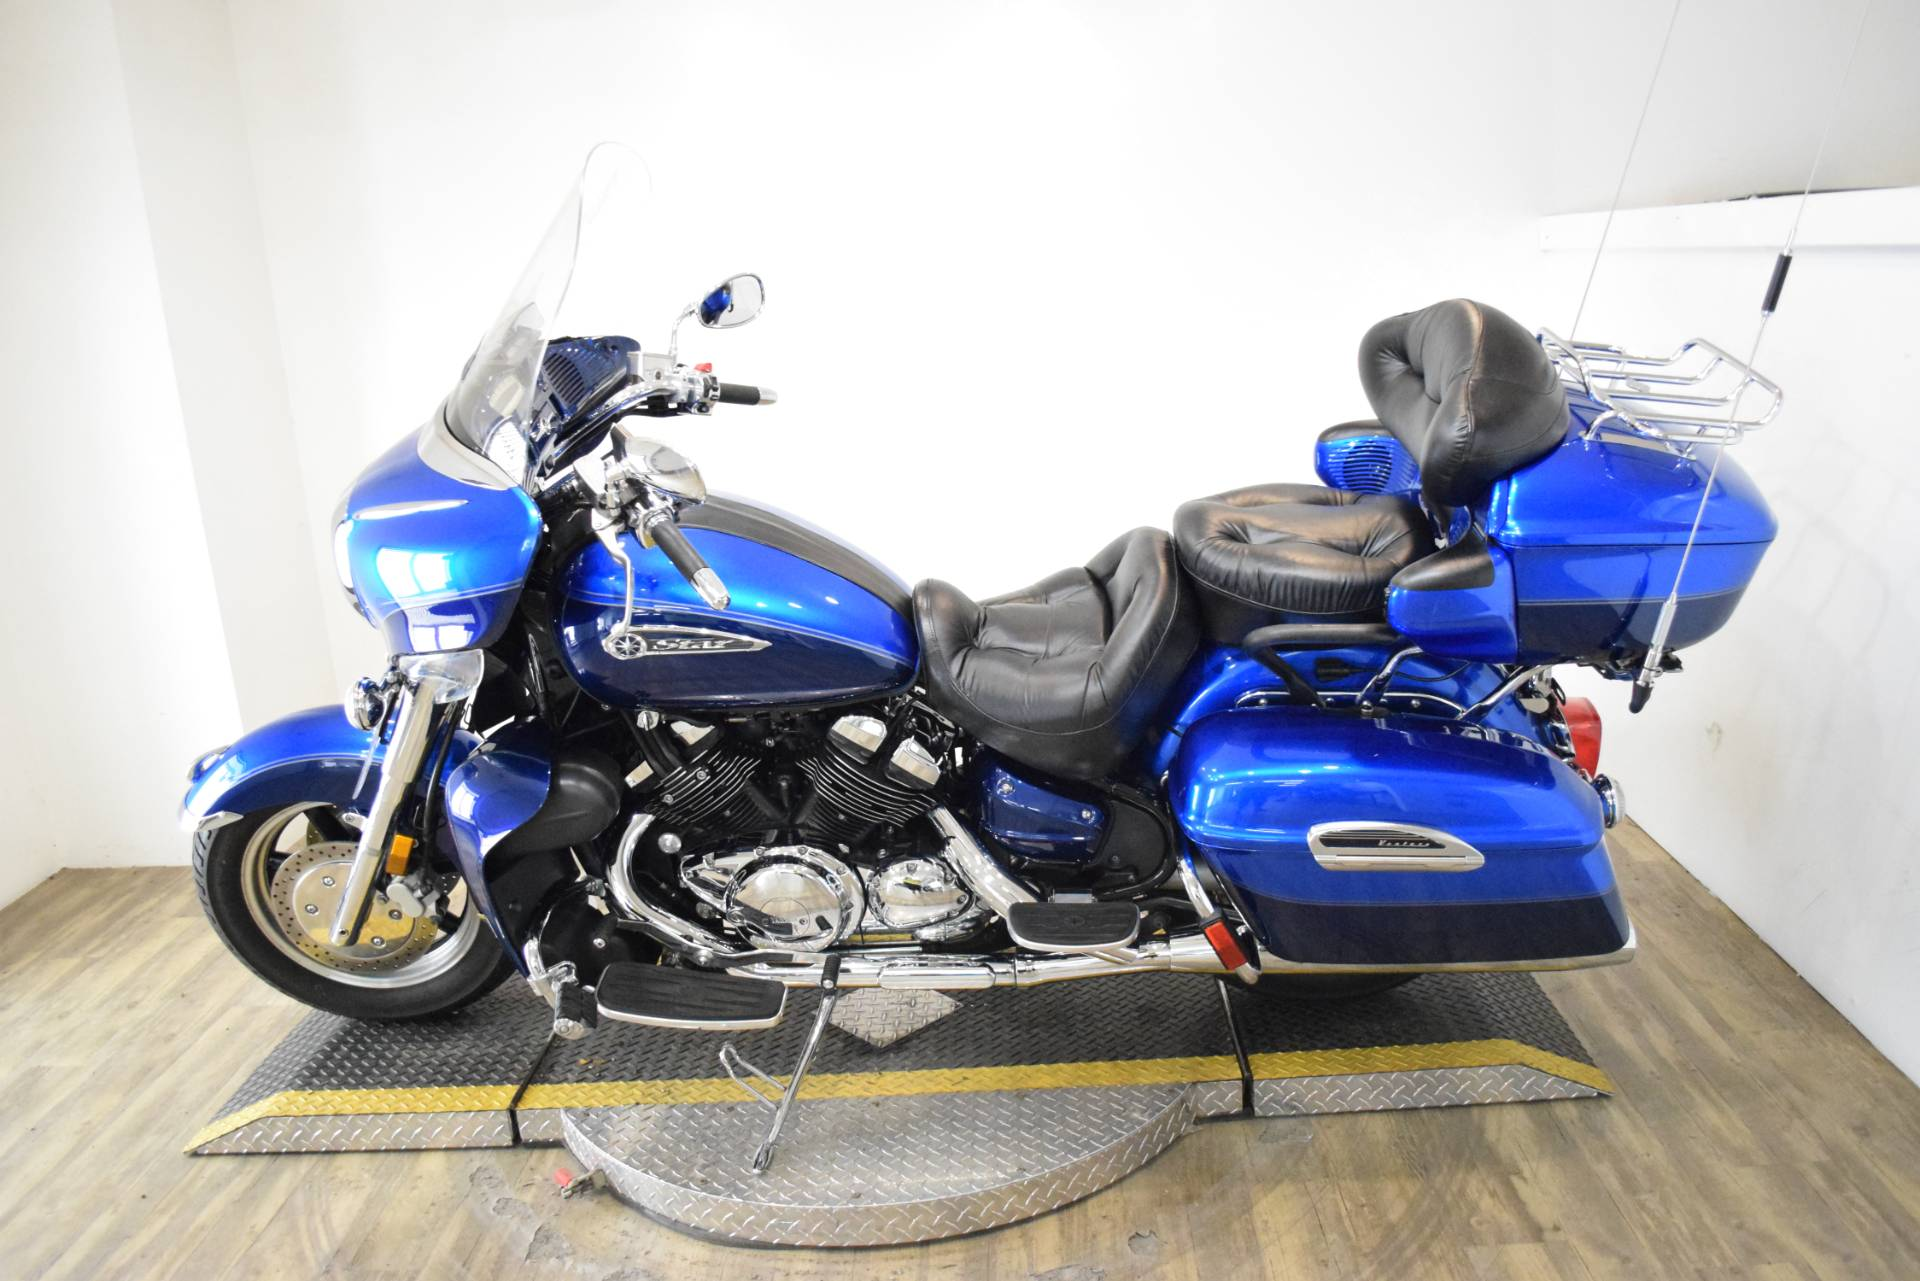 2011 Yamaha Royal Star Venture S in Wauconda, Illinois - Photo 15